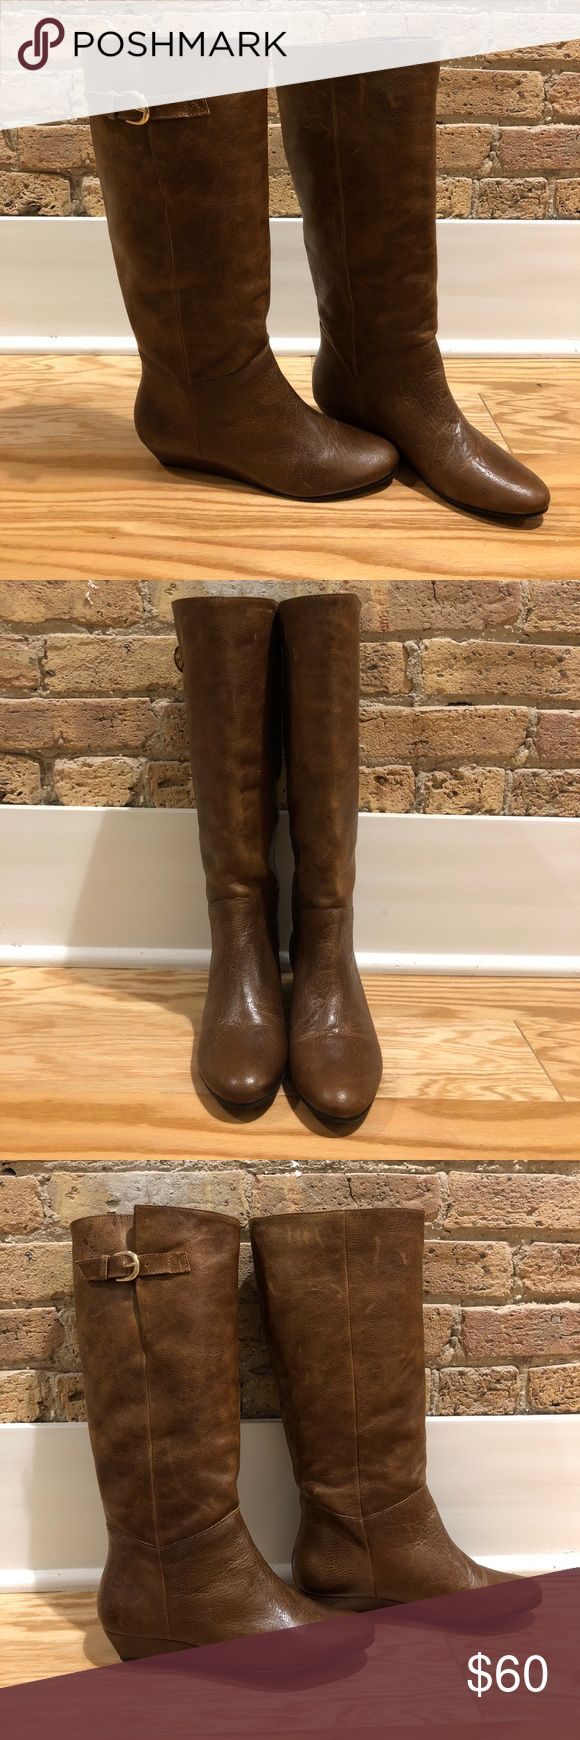 Steve Madden Intyce Boots Brown Size 8 Steve Madden Intyce Boots Brown Size 8. New never worn. Steve Madden Shoes Over the Knee Boots